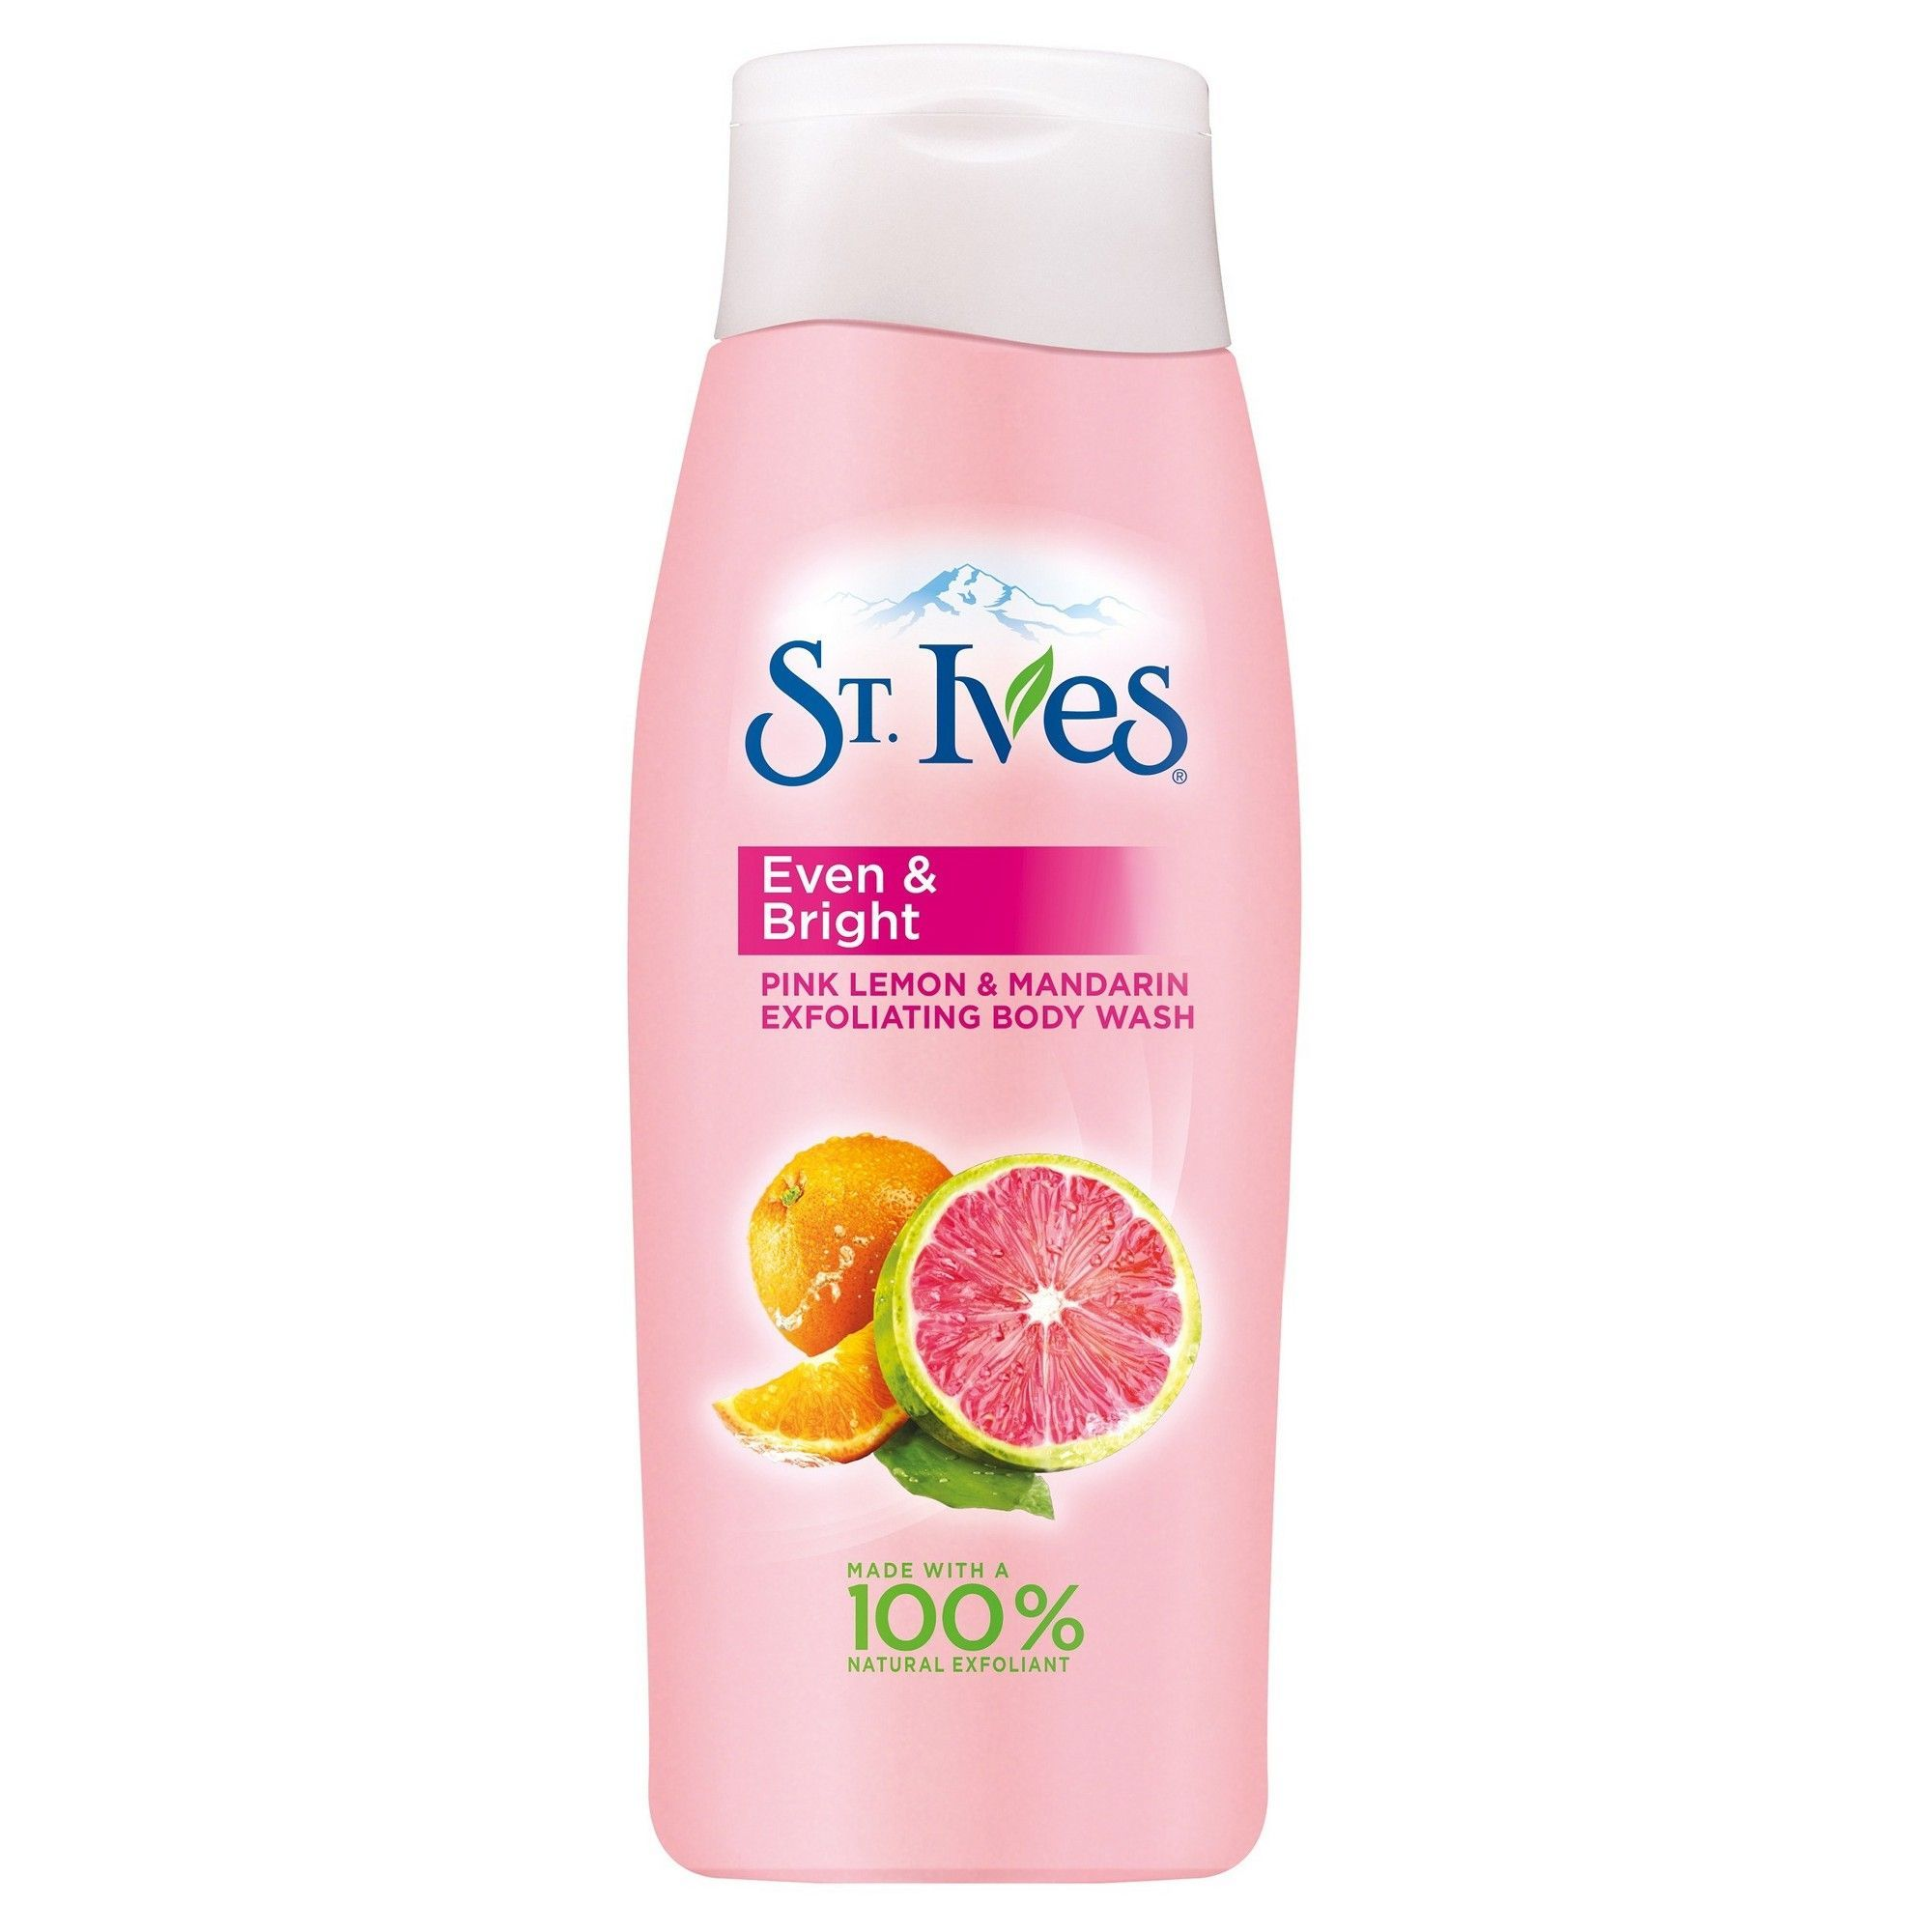 St. Ives Radiant Skin Pink Lemon & Mandarin Orange Paraben